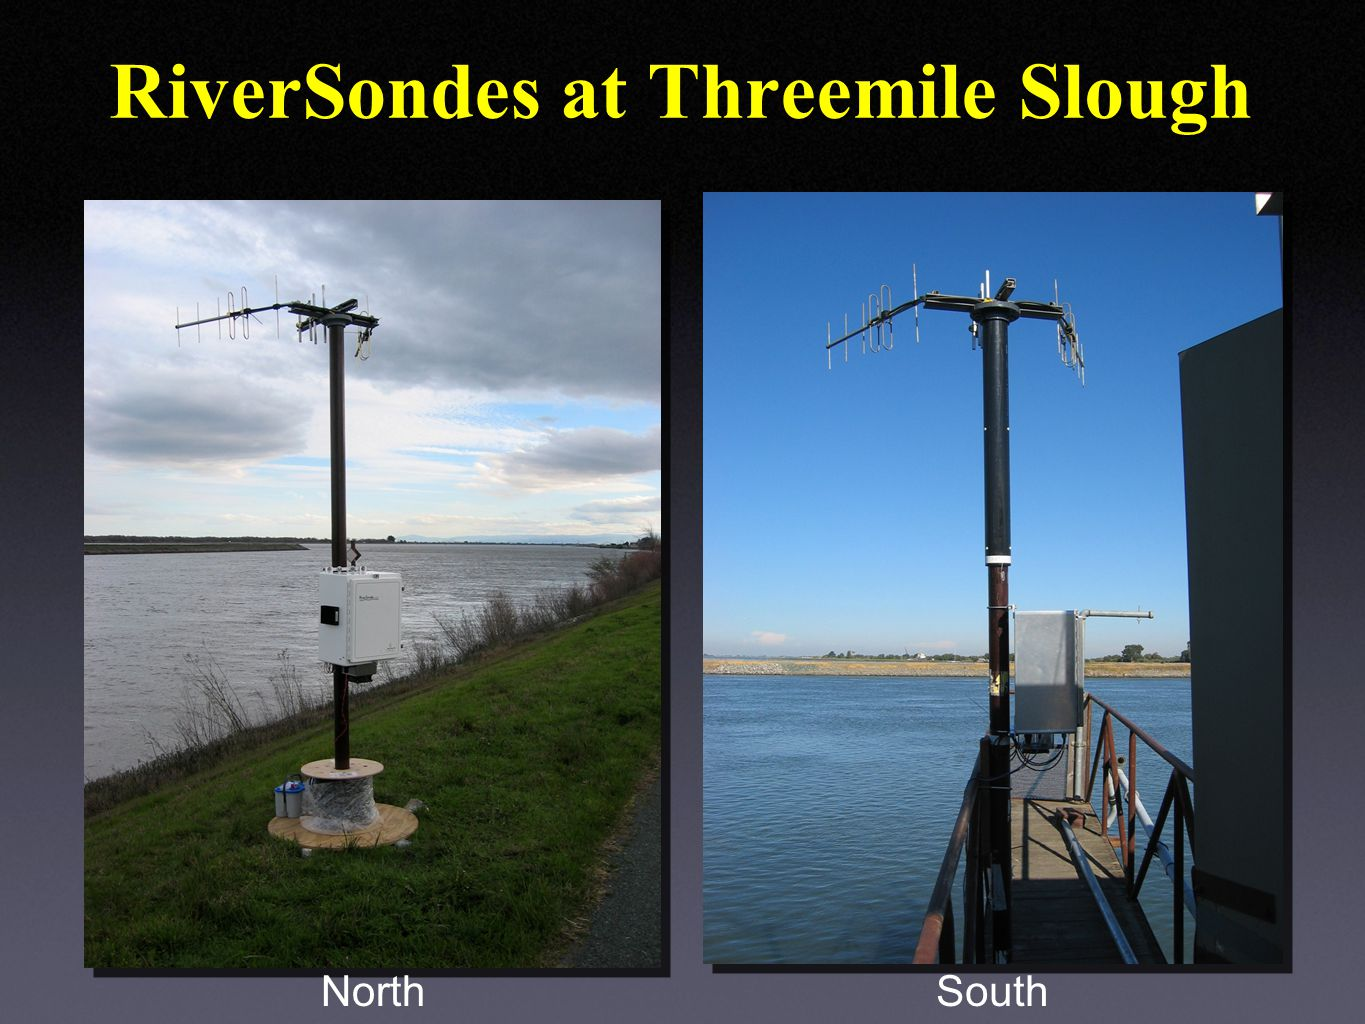 RiverSondes at Threemile Slough